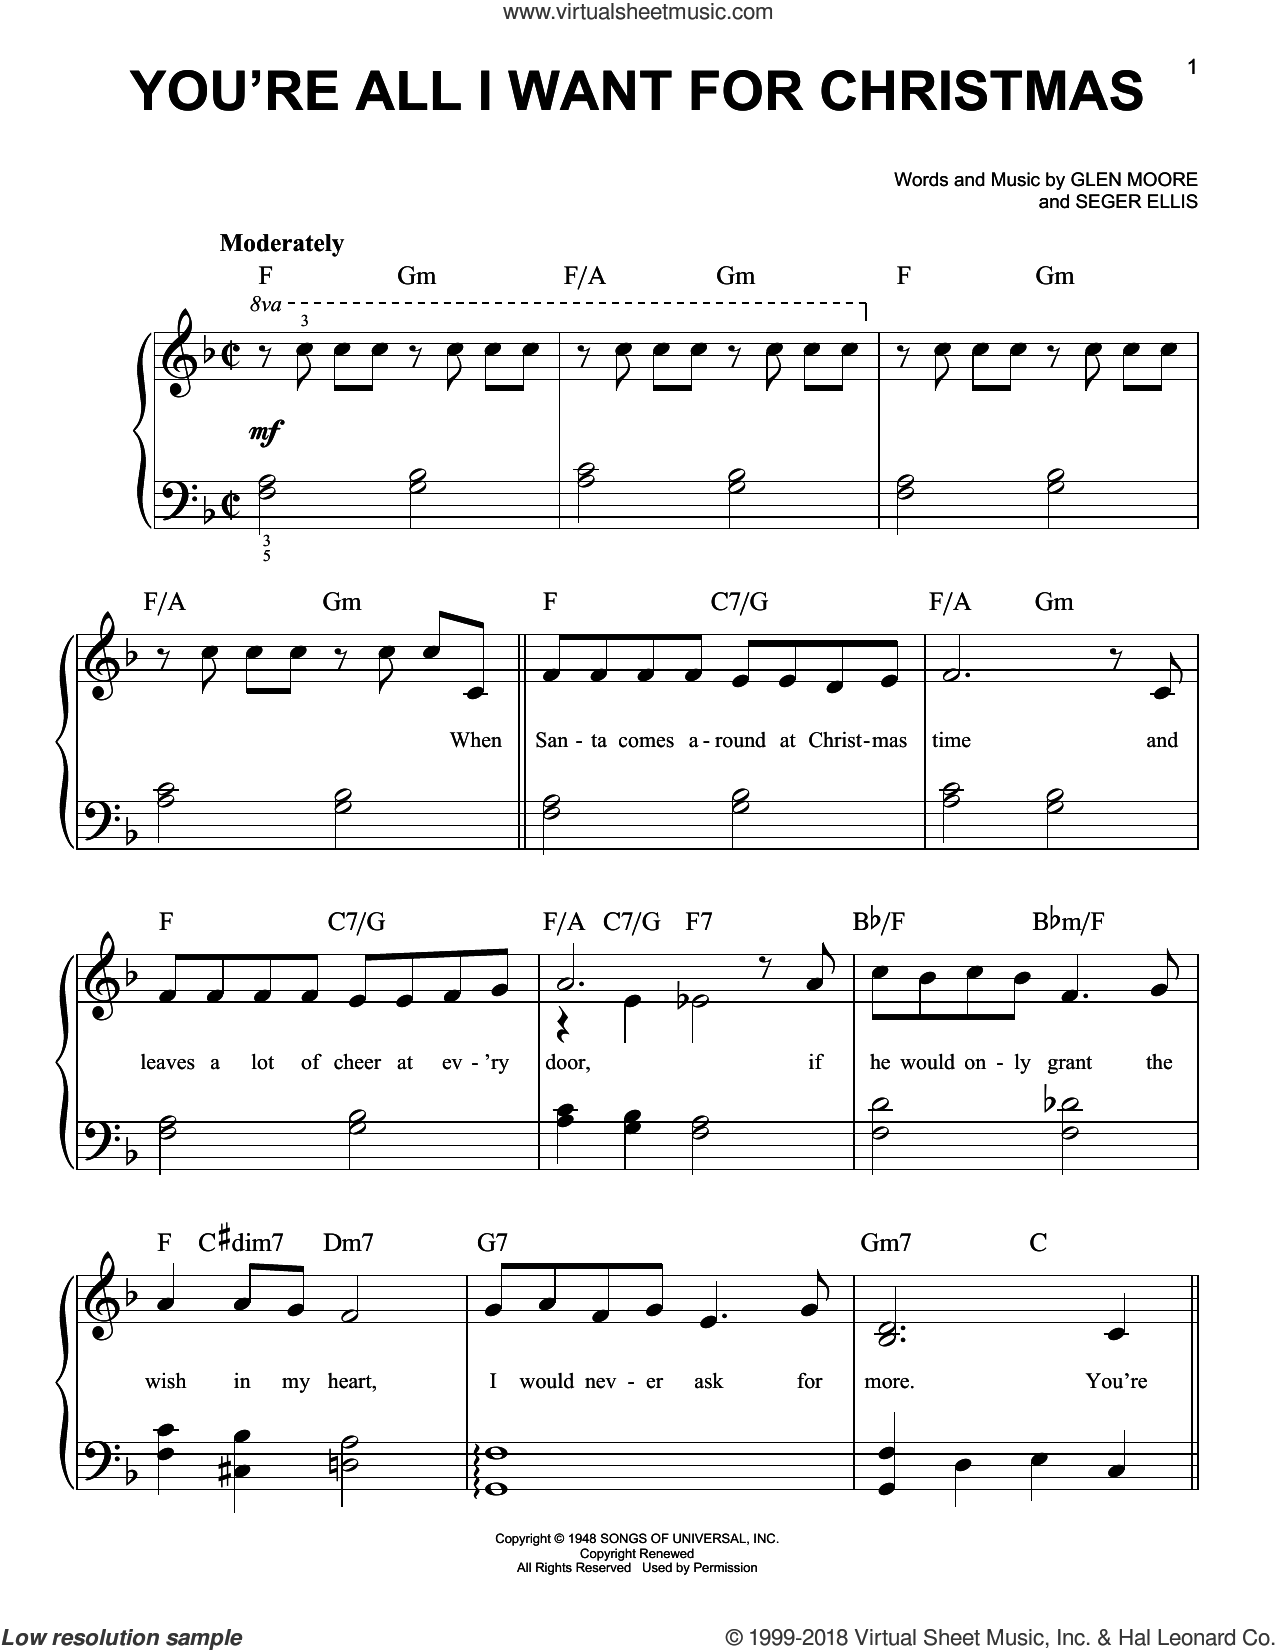 You're All I Want For Christmas sheet music for piano solo by Glen Moore, Frank Gallagher and Seger Ellis, beginner skill level